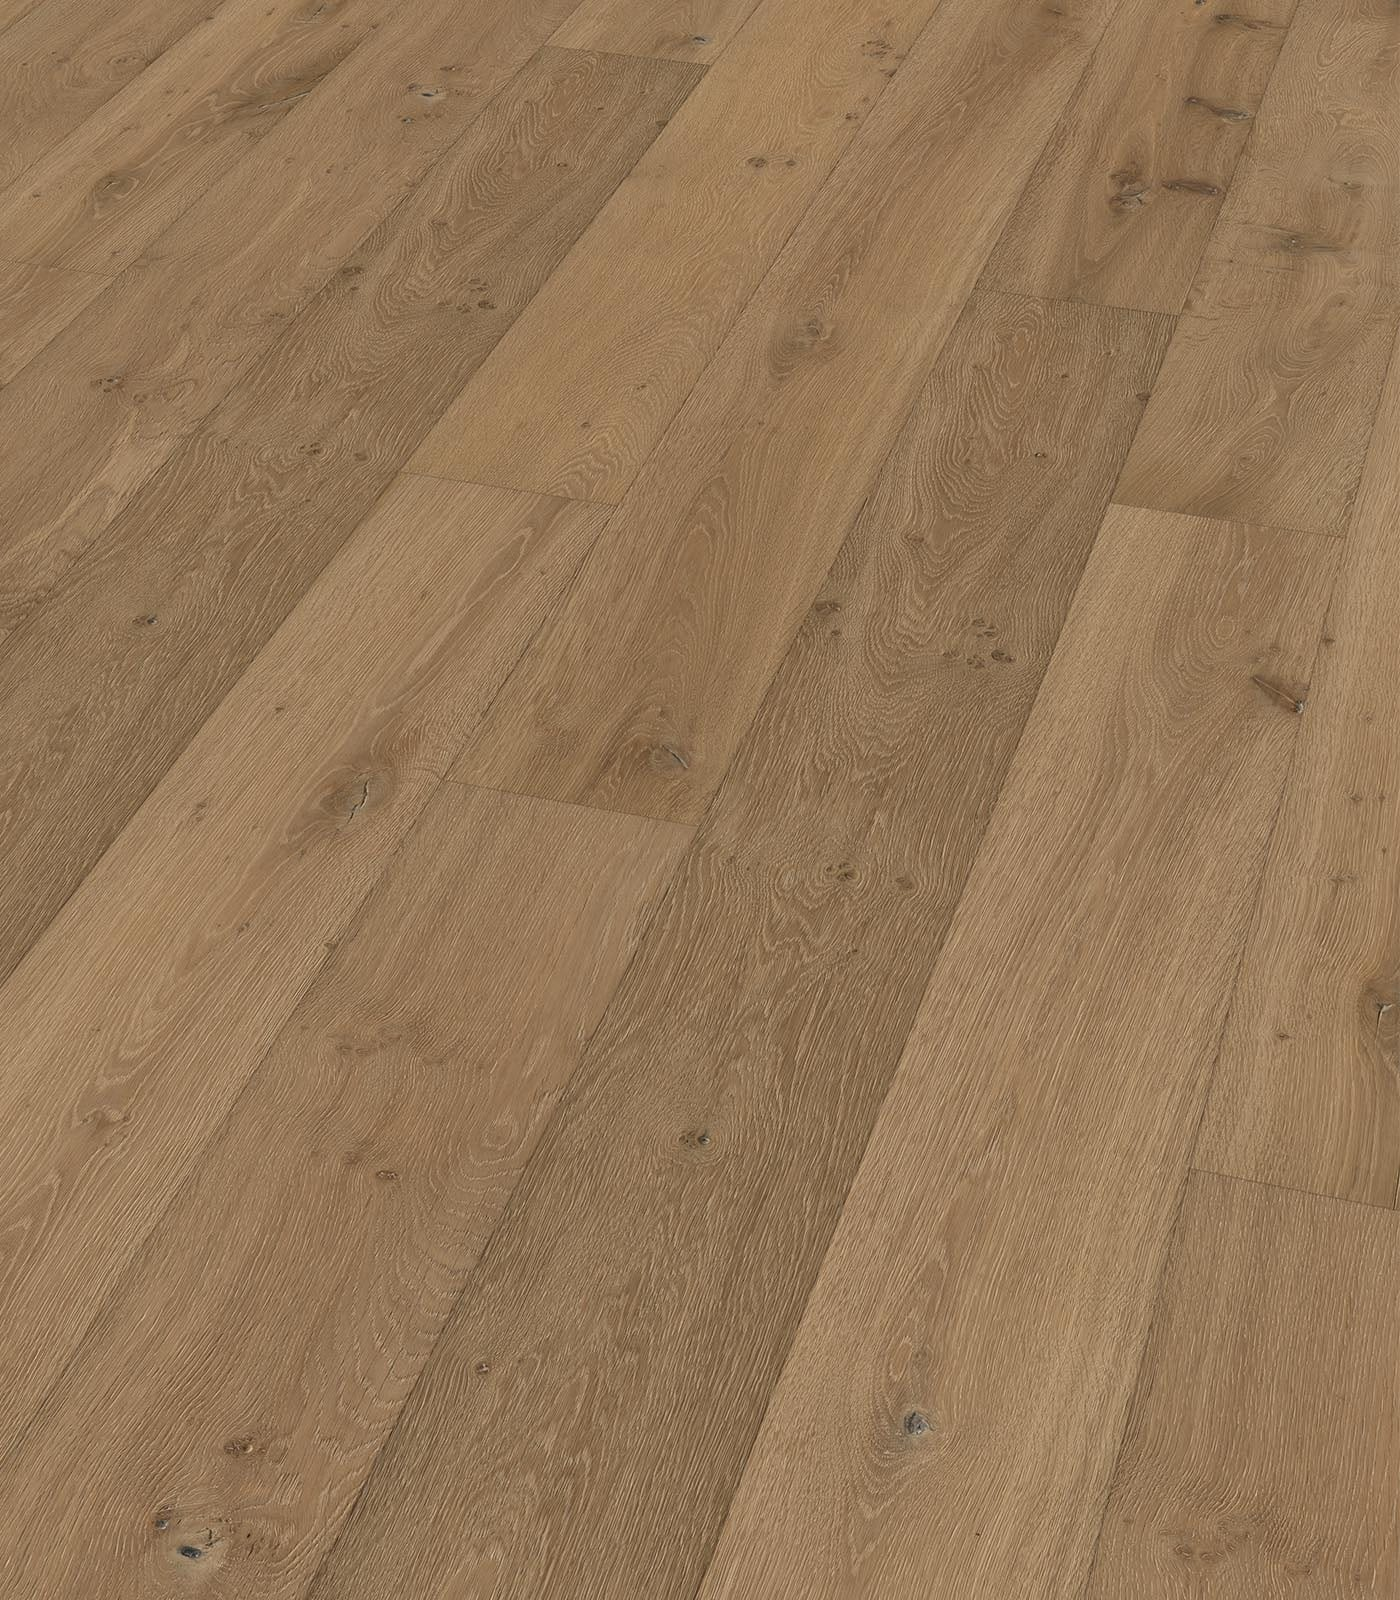 Assisi-European Oak Floors-Heritage Collection-angle